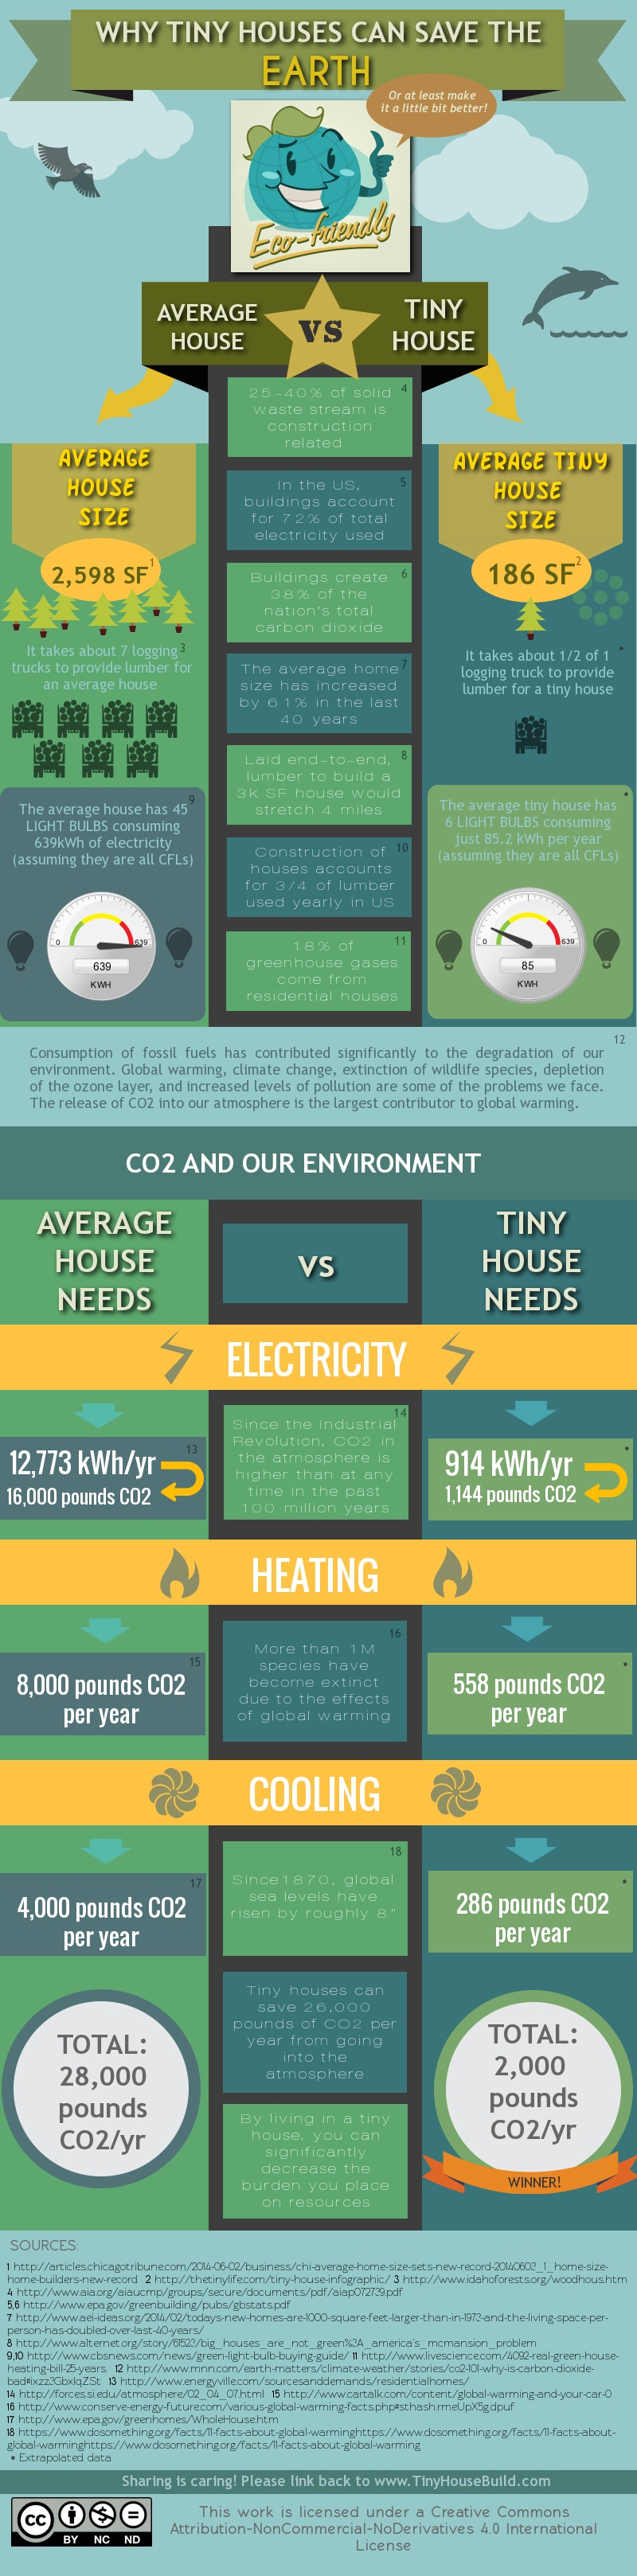 Why Tiny Houses Can Save The Earth